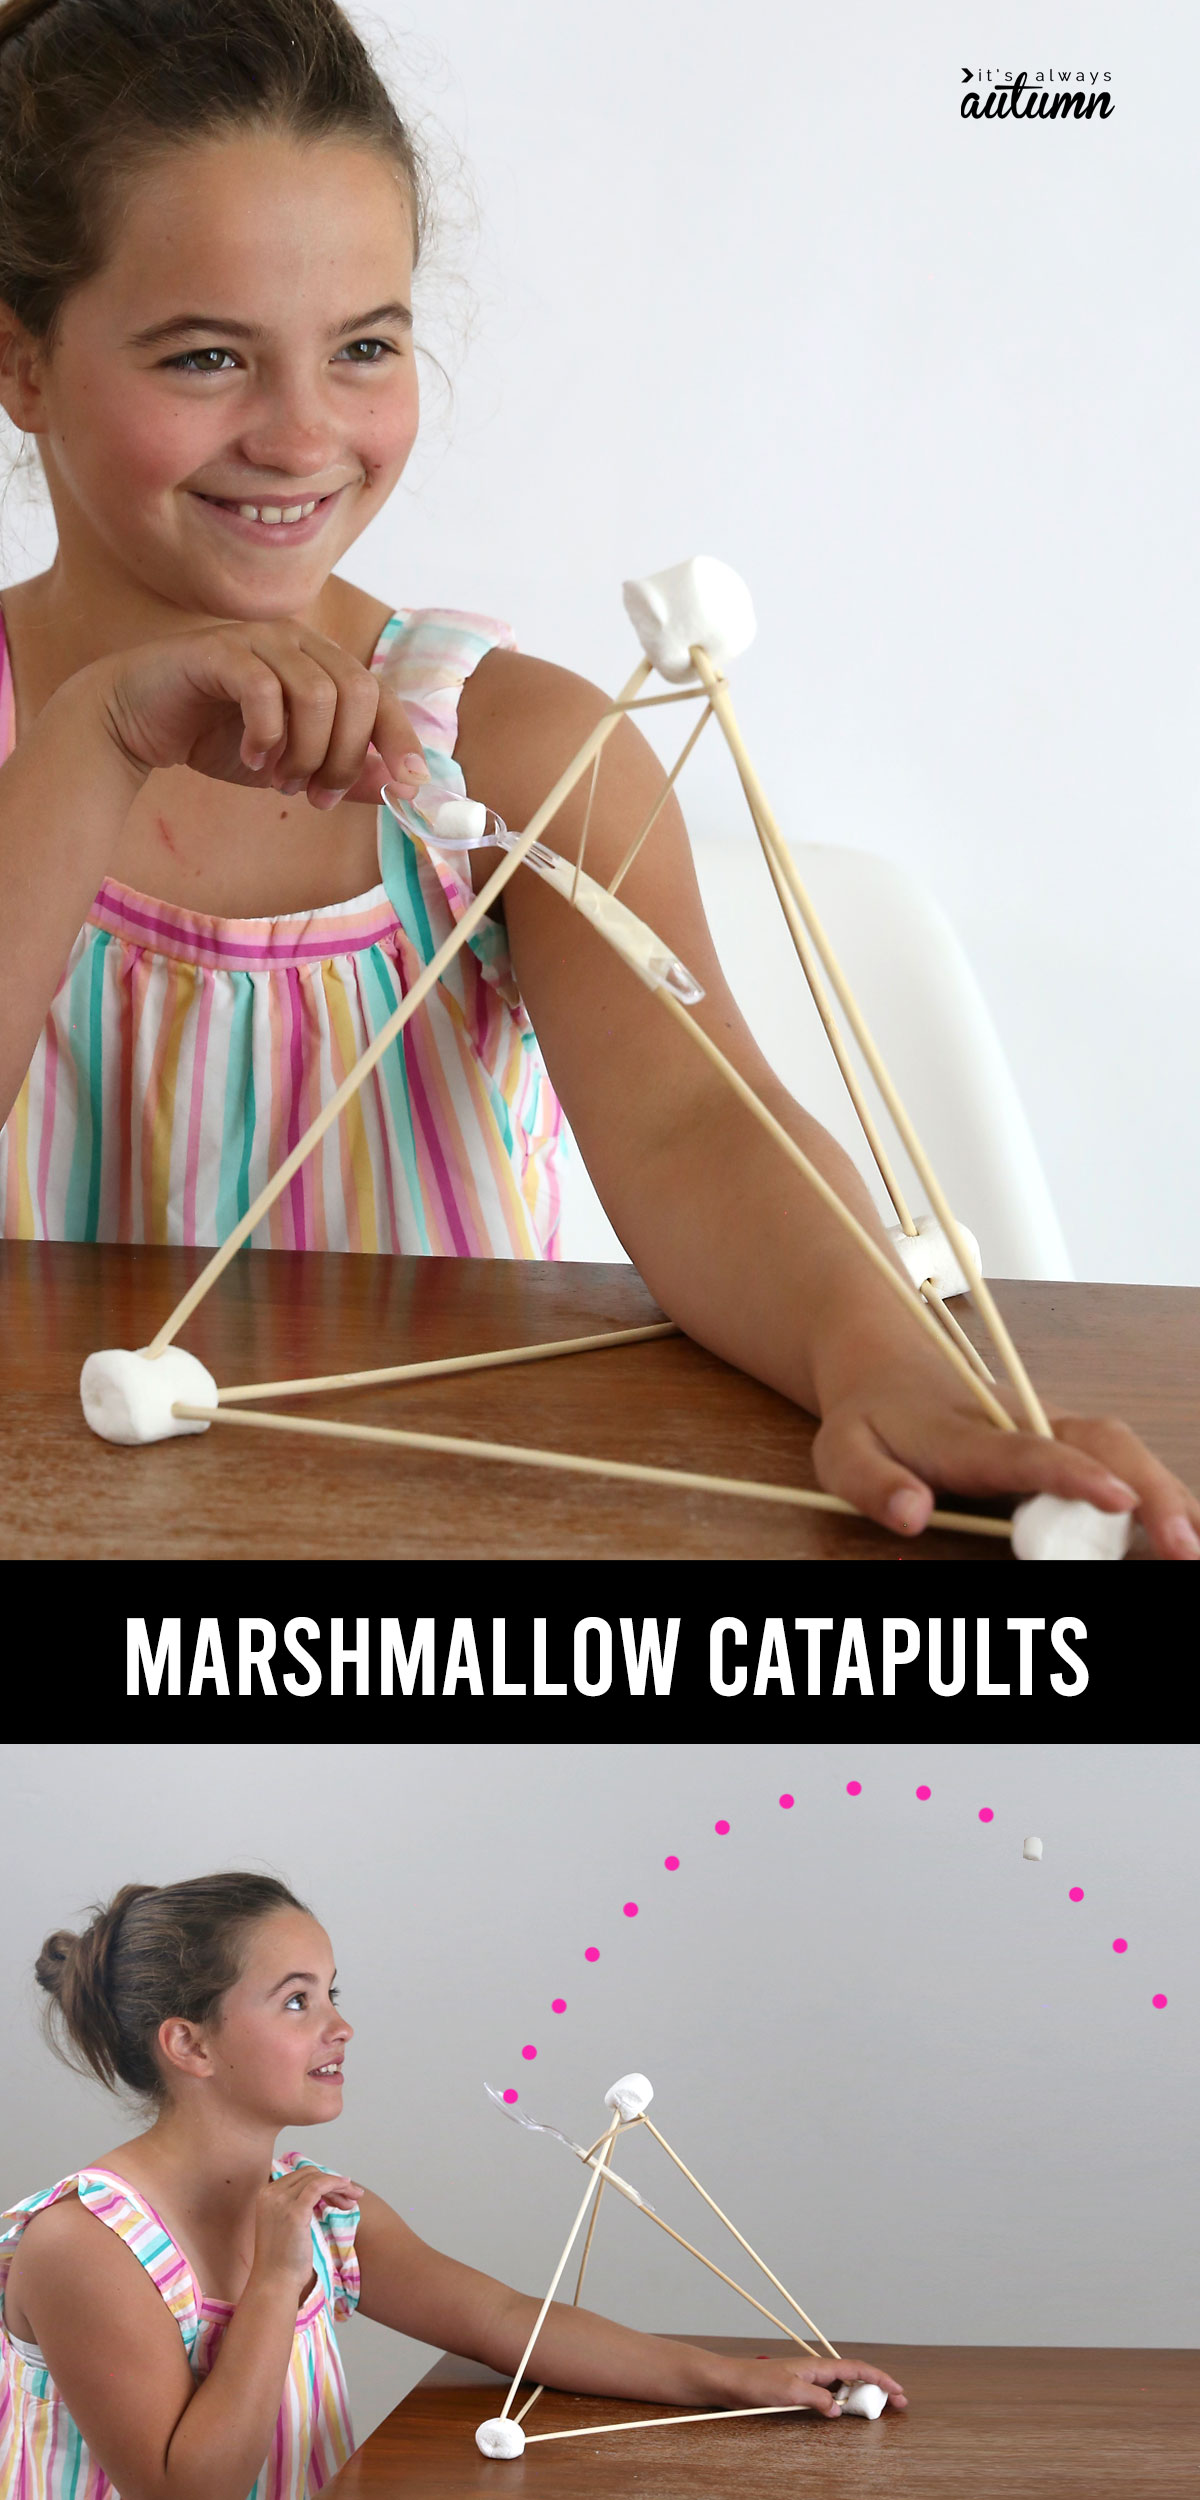 Girl launching marshmallows with a catapult, text: marshmallow catapults